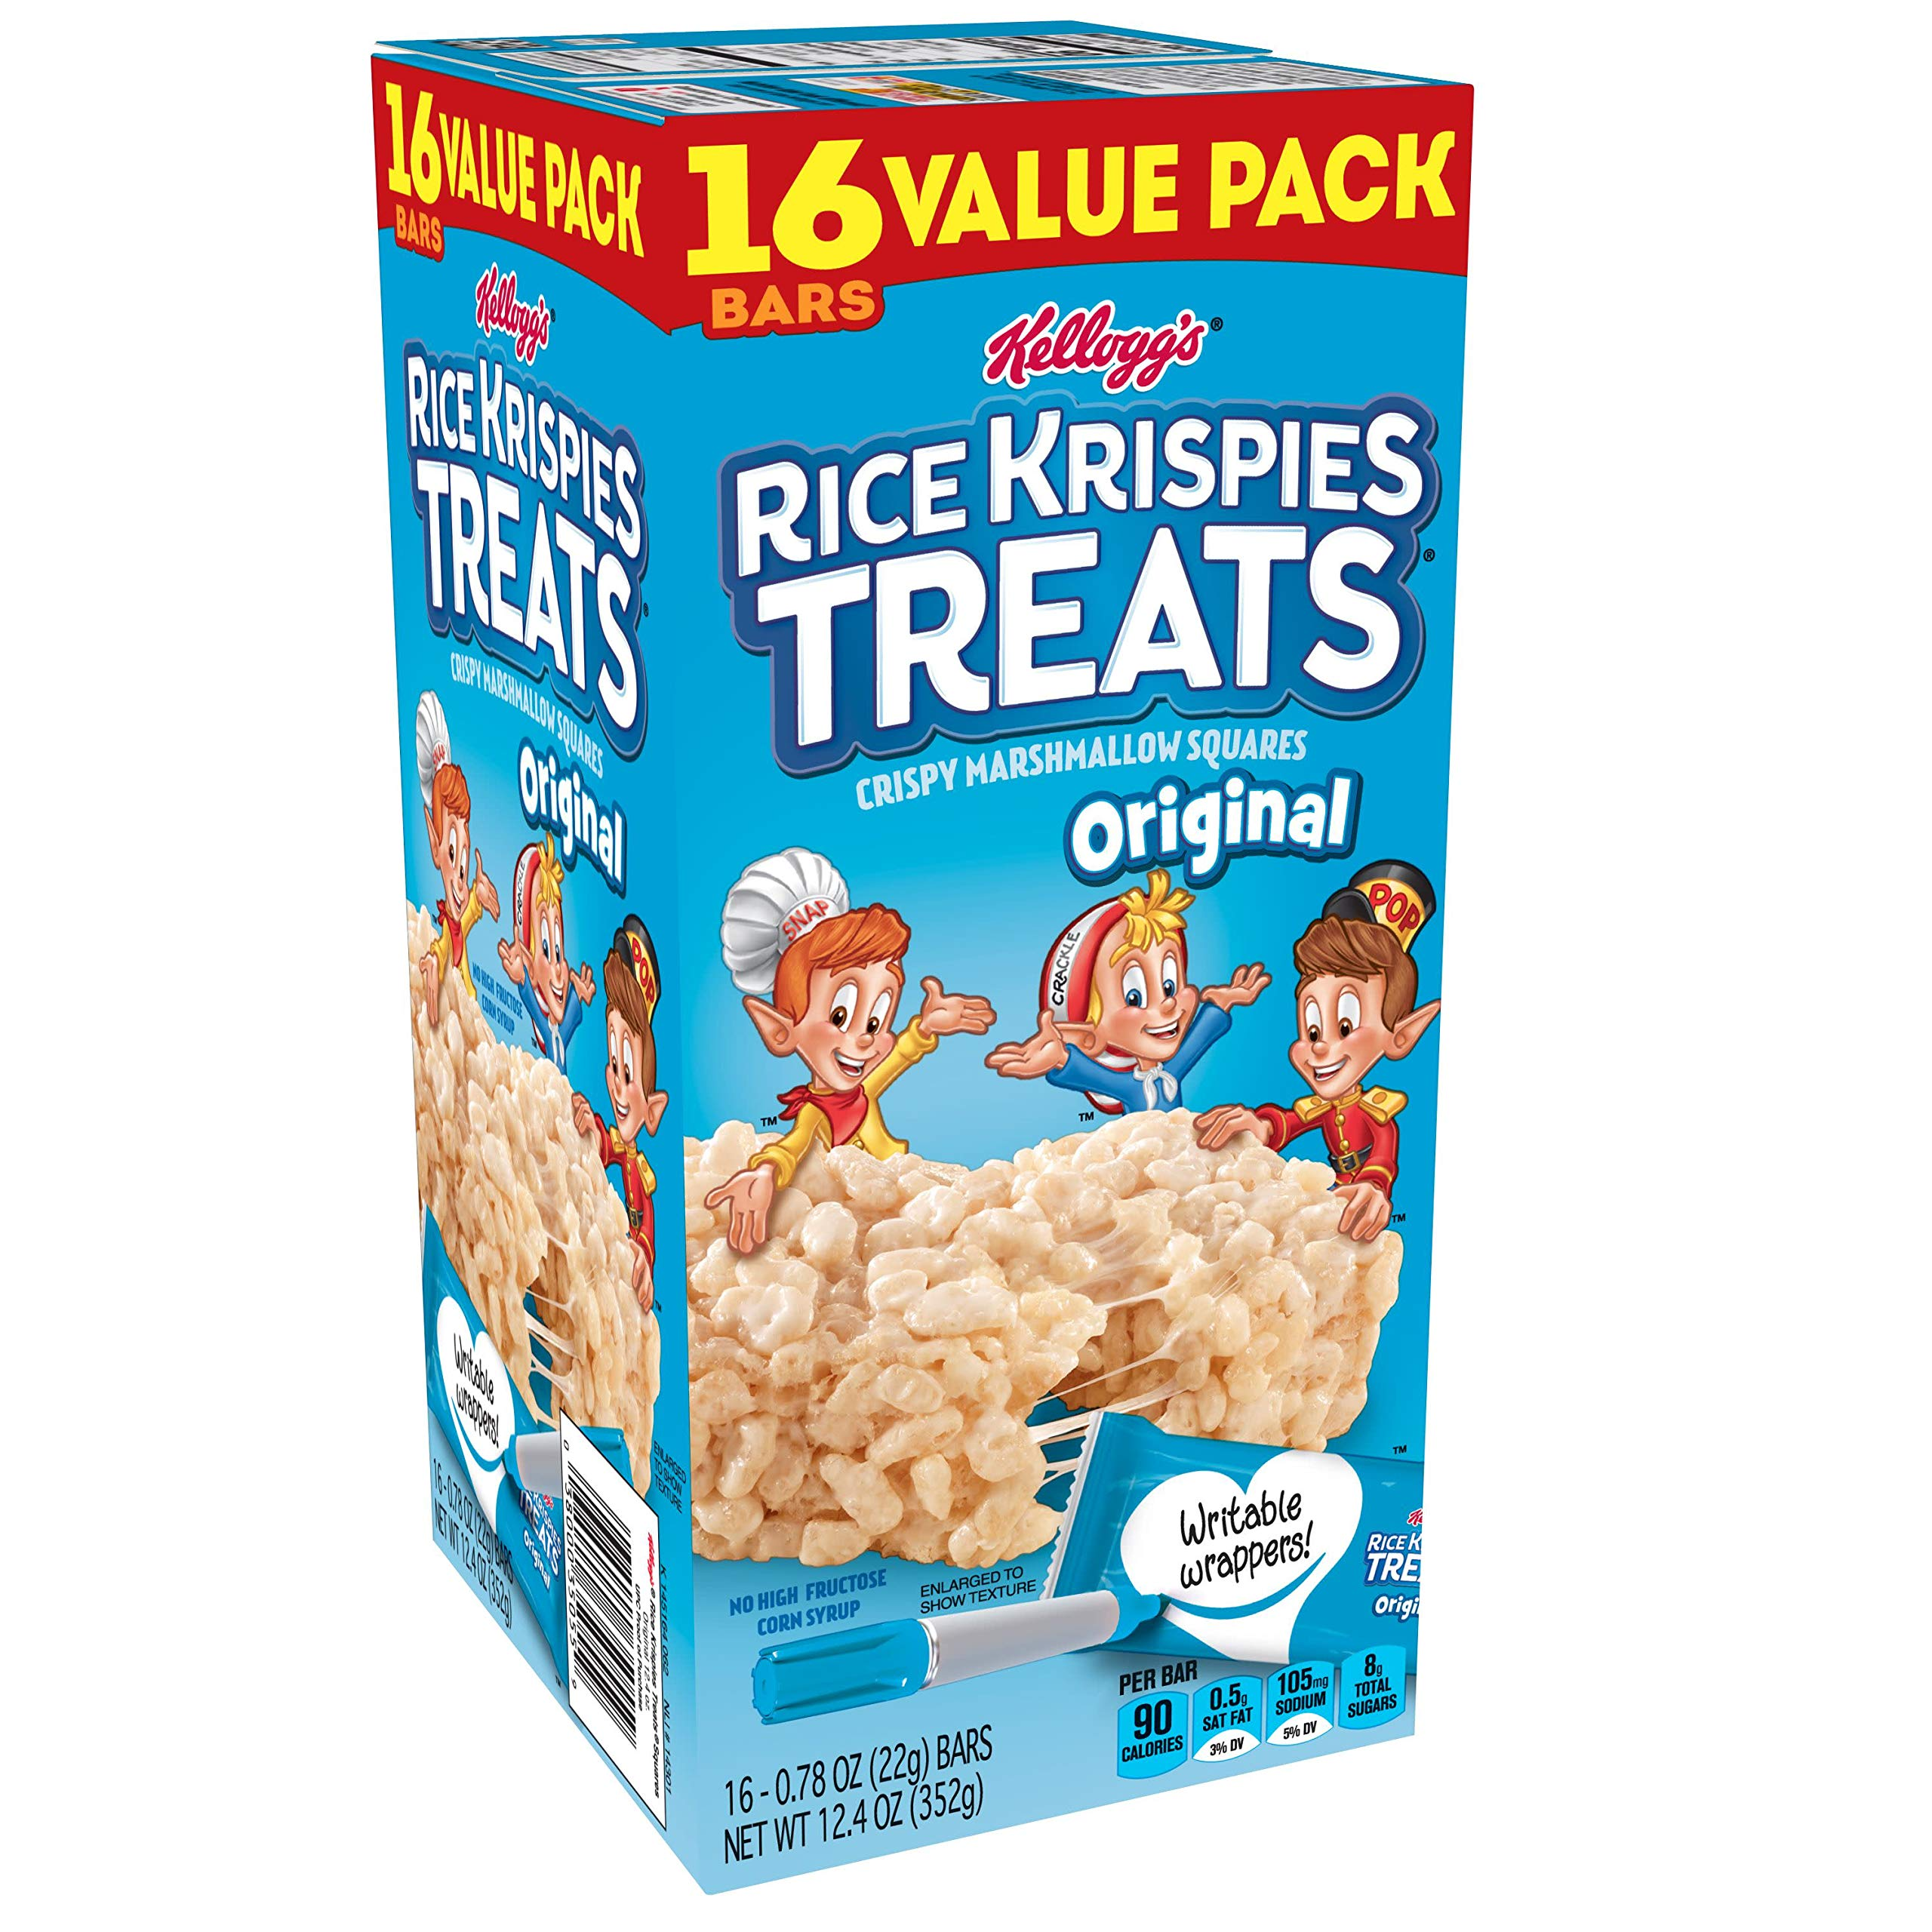 Kellogg's Rice Krispies Treats, Crispy Marshmallow Squares, Original, Value Pack, 0.78 oz Bars (16 Count) by Rice Krispies